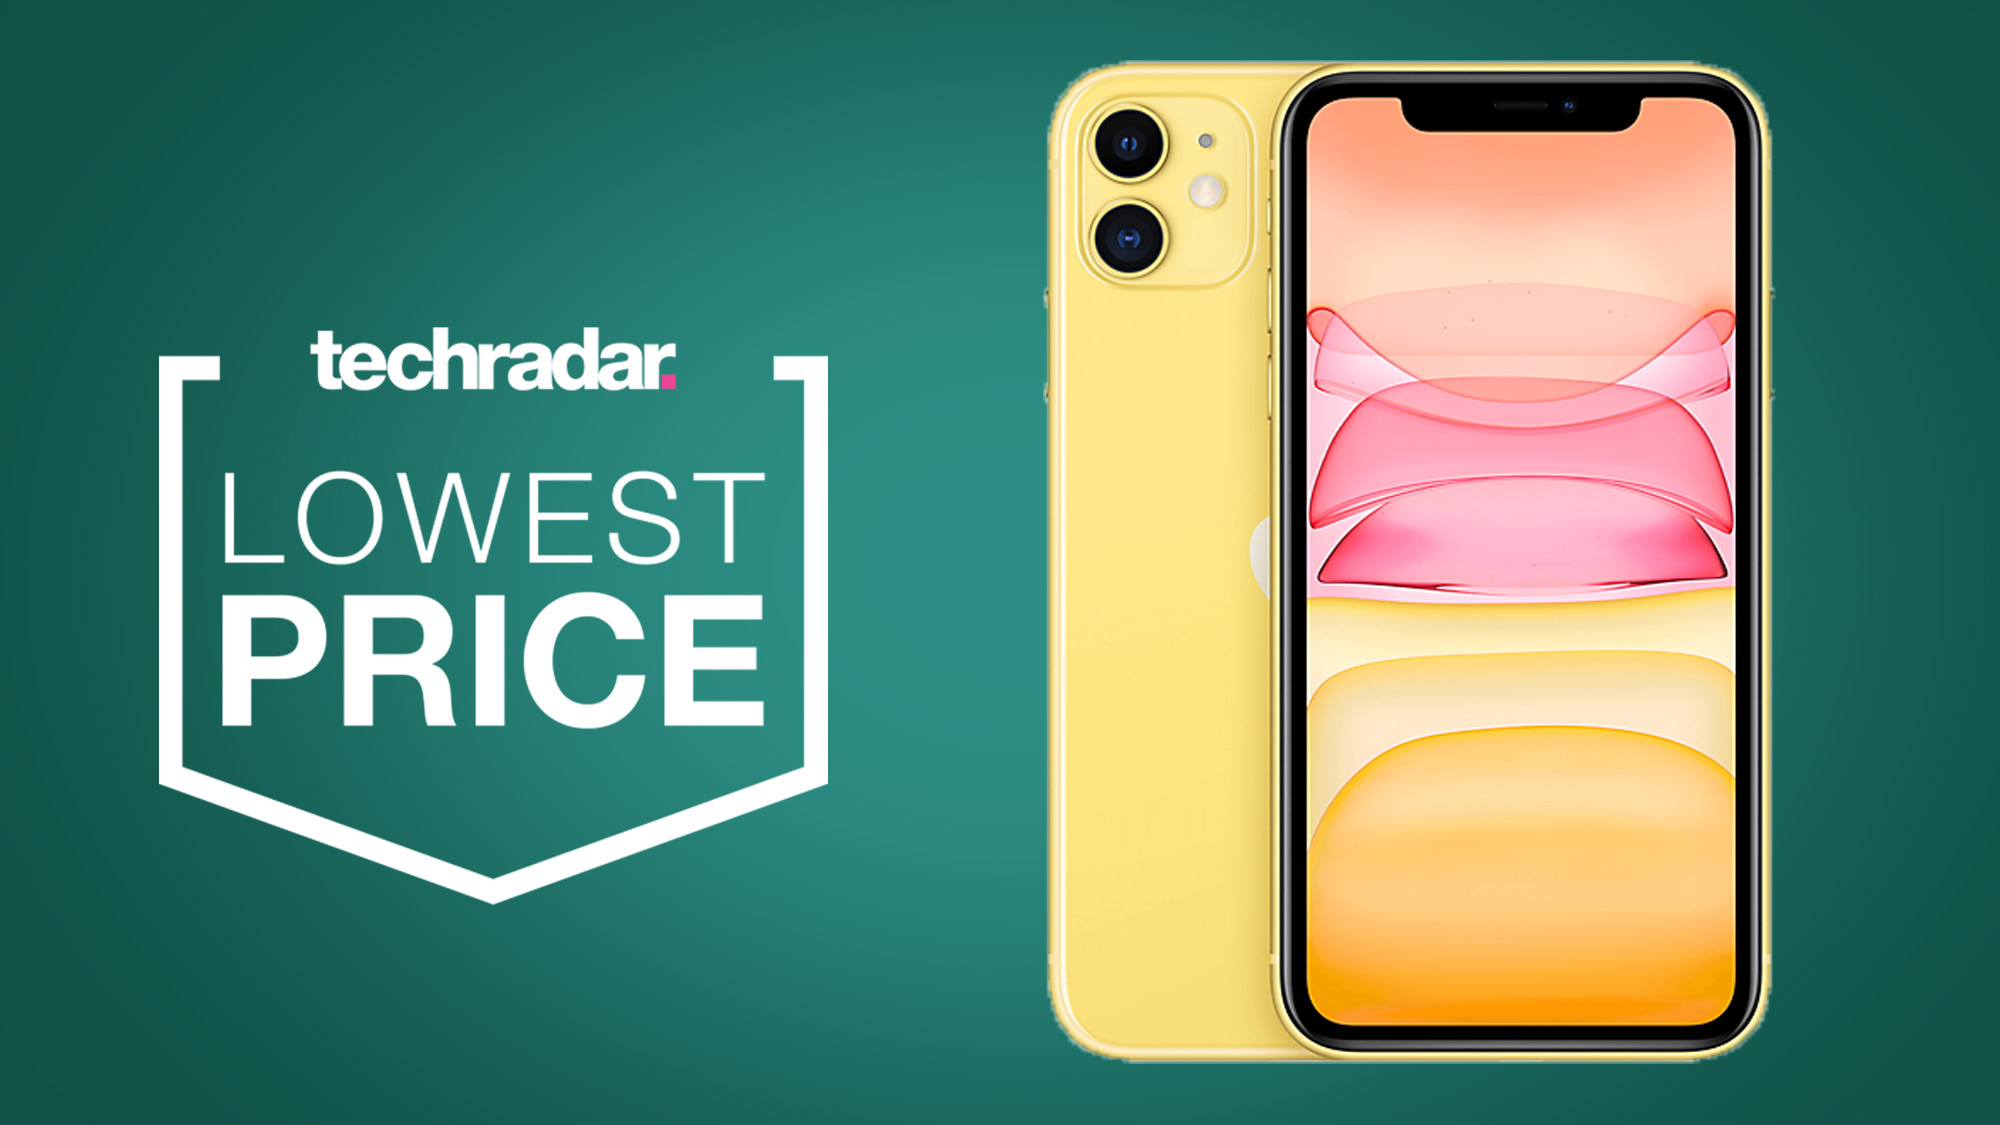 SIM-free iPhone 11 deals just fell to lowest price ever - cheaper than Black Friday